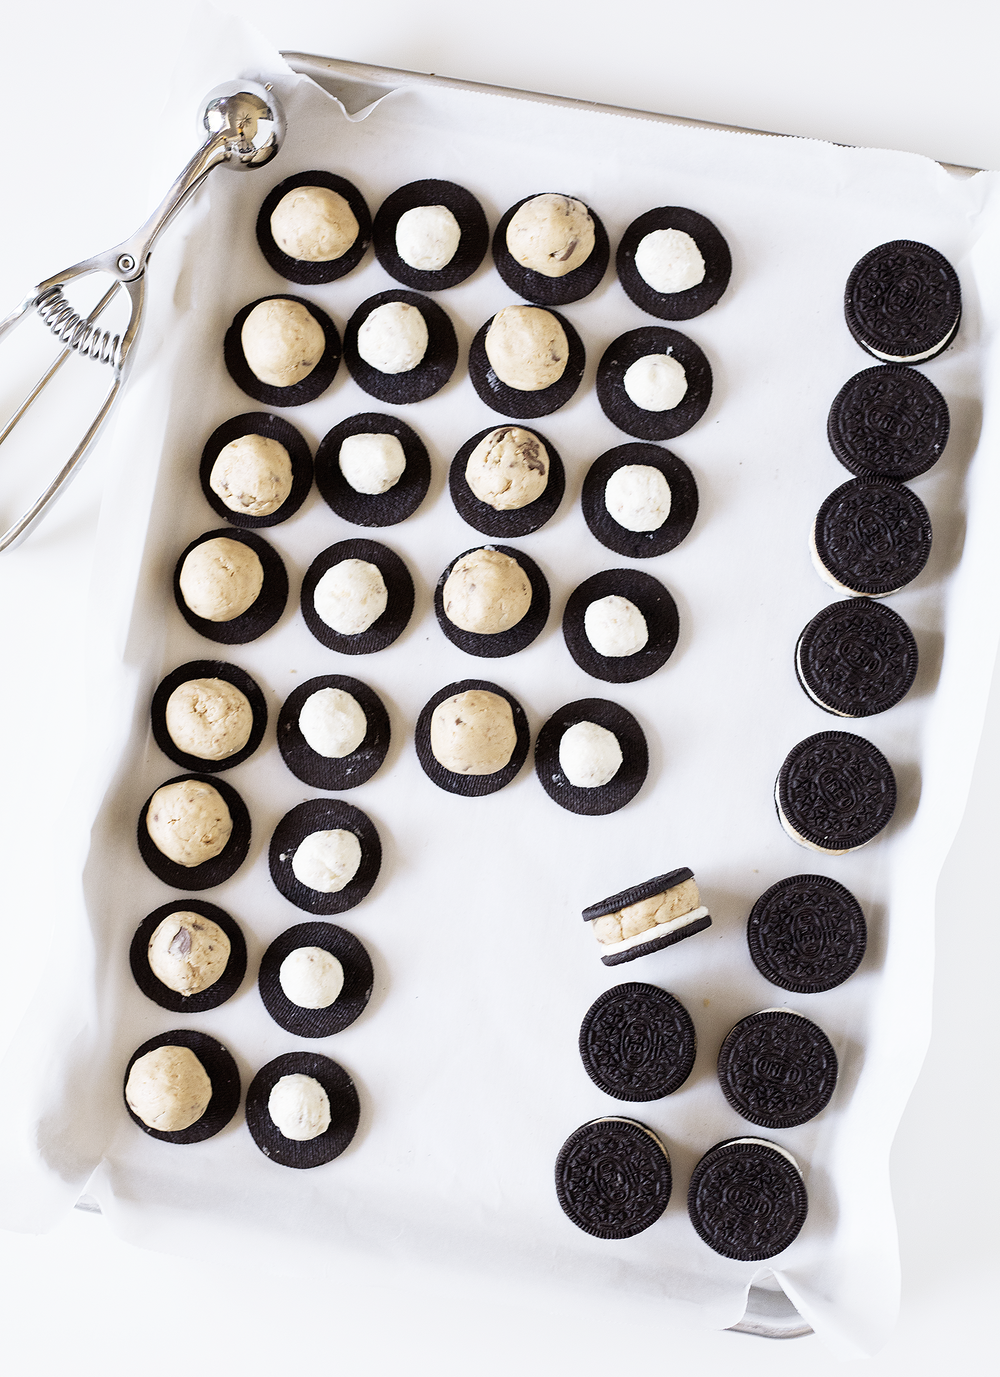 Peanut Butter S'mores Stuffed Oreos | Sarah Makes Stuff